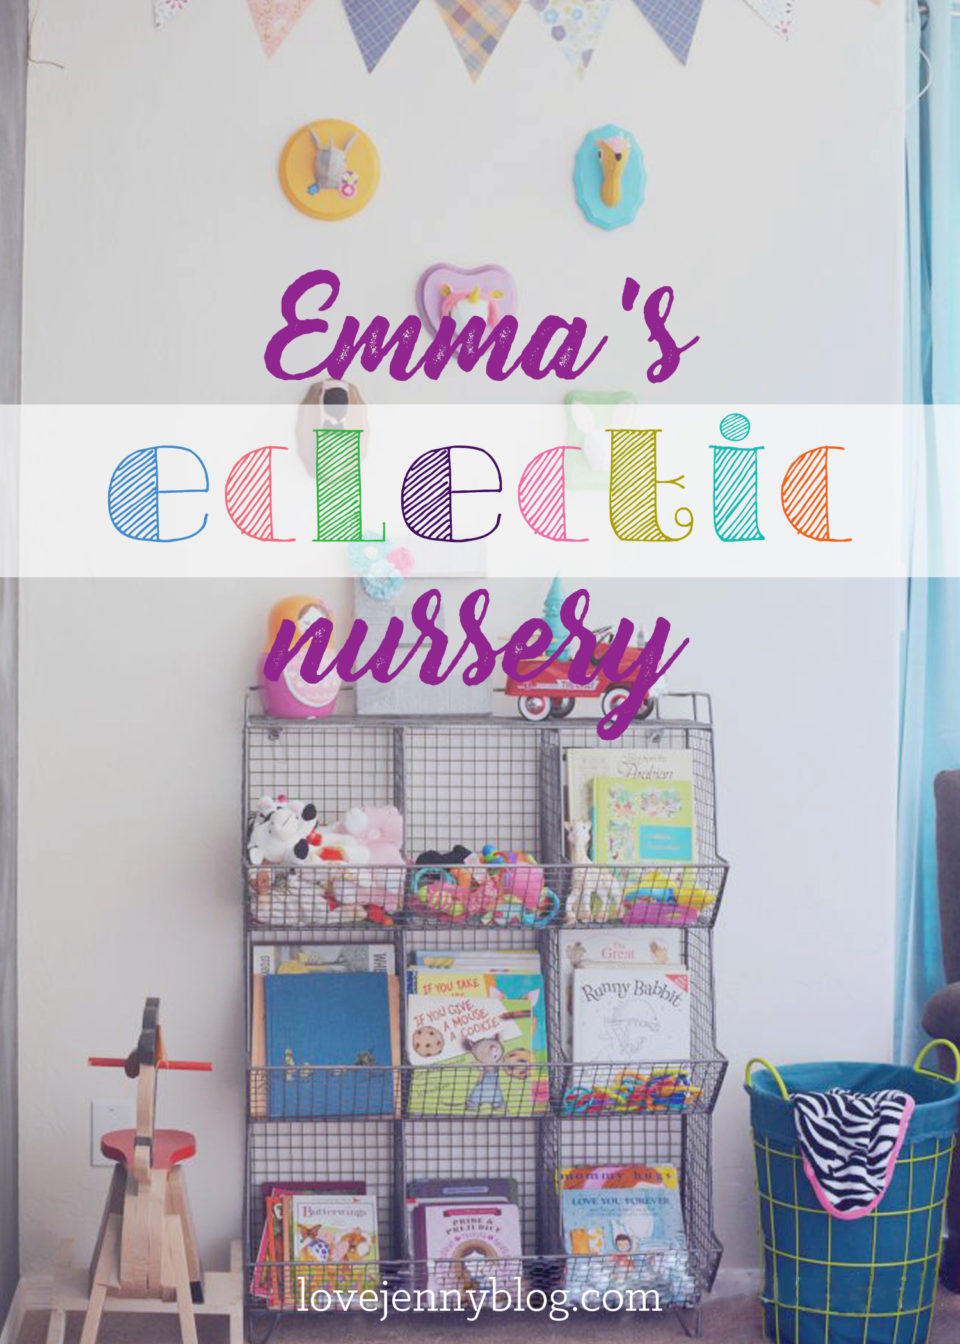 Emma's Nursery Reveal